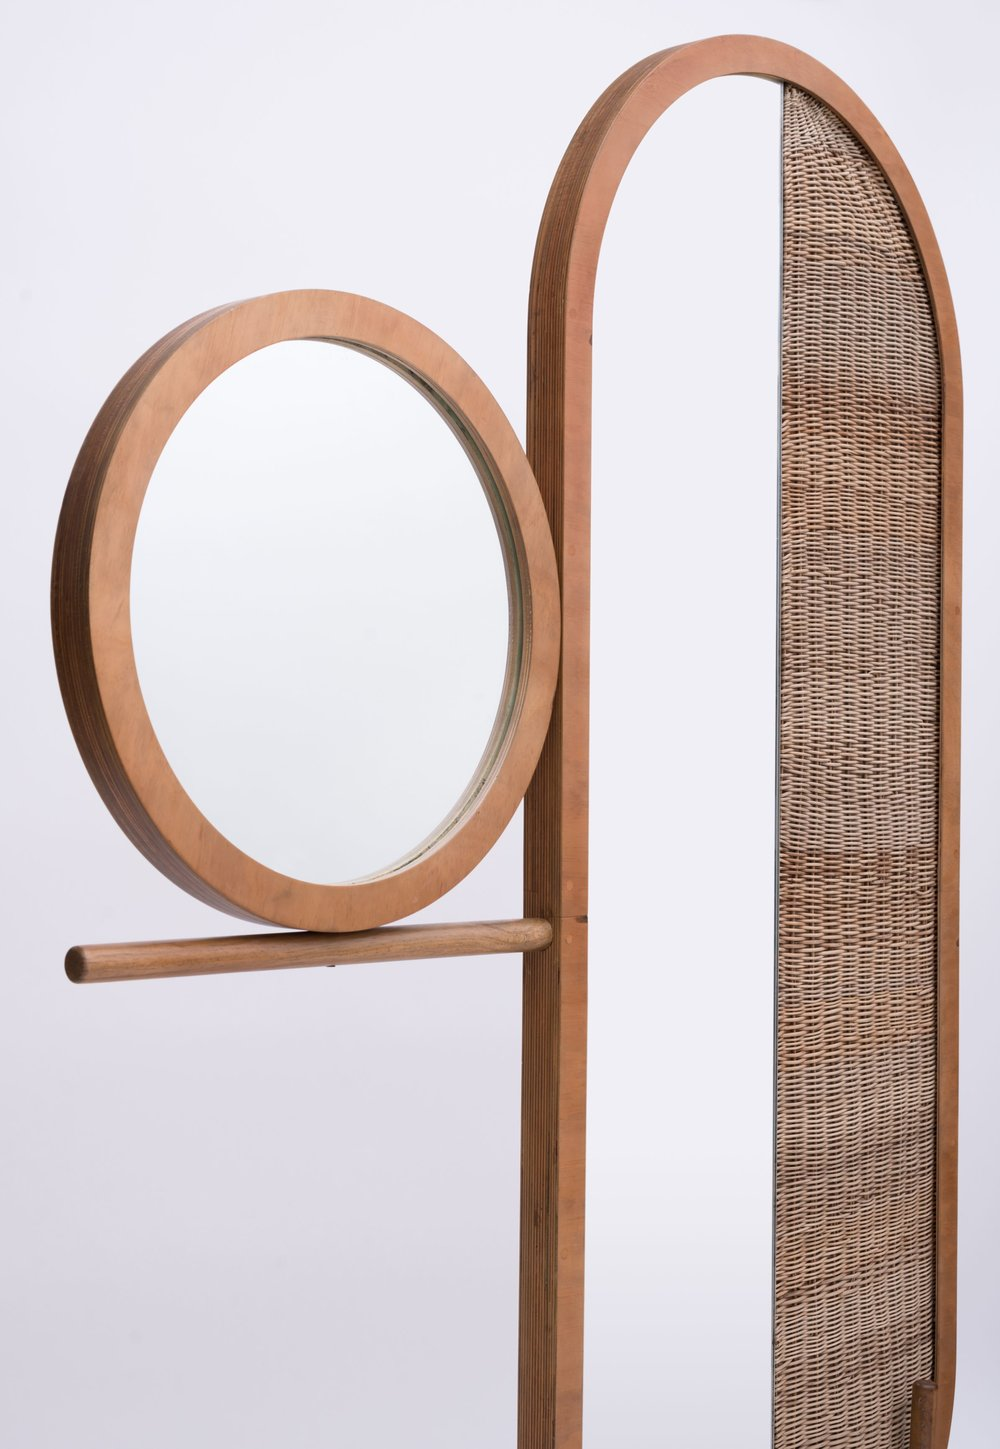 Eclipse/ Sol Screen - An homage to the solar eclipse, this set of screens plays with the duality of solid and empty space, combining circular shapes halved by a hand woven wicker weave. Made with hand-woven wicker, mirror, and pine.